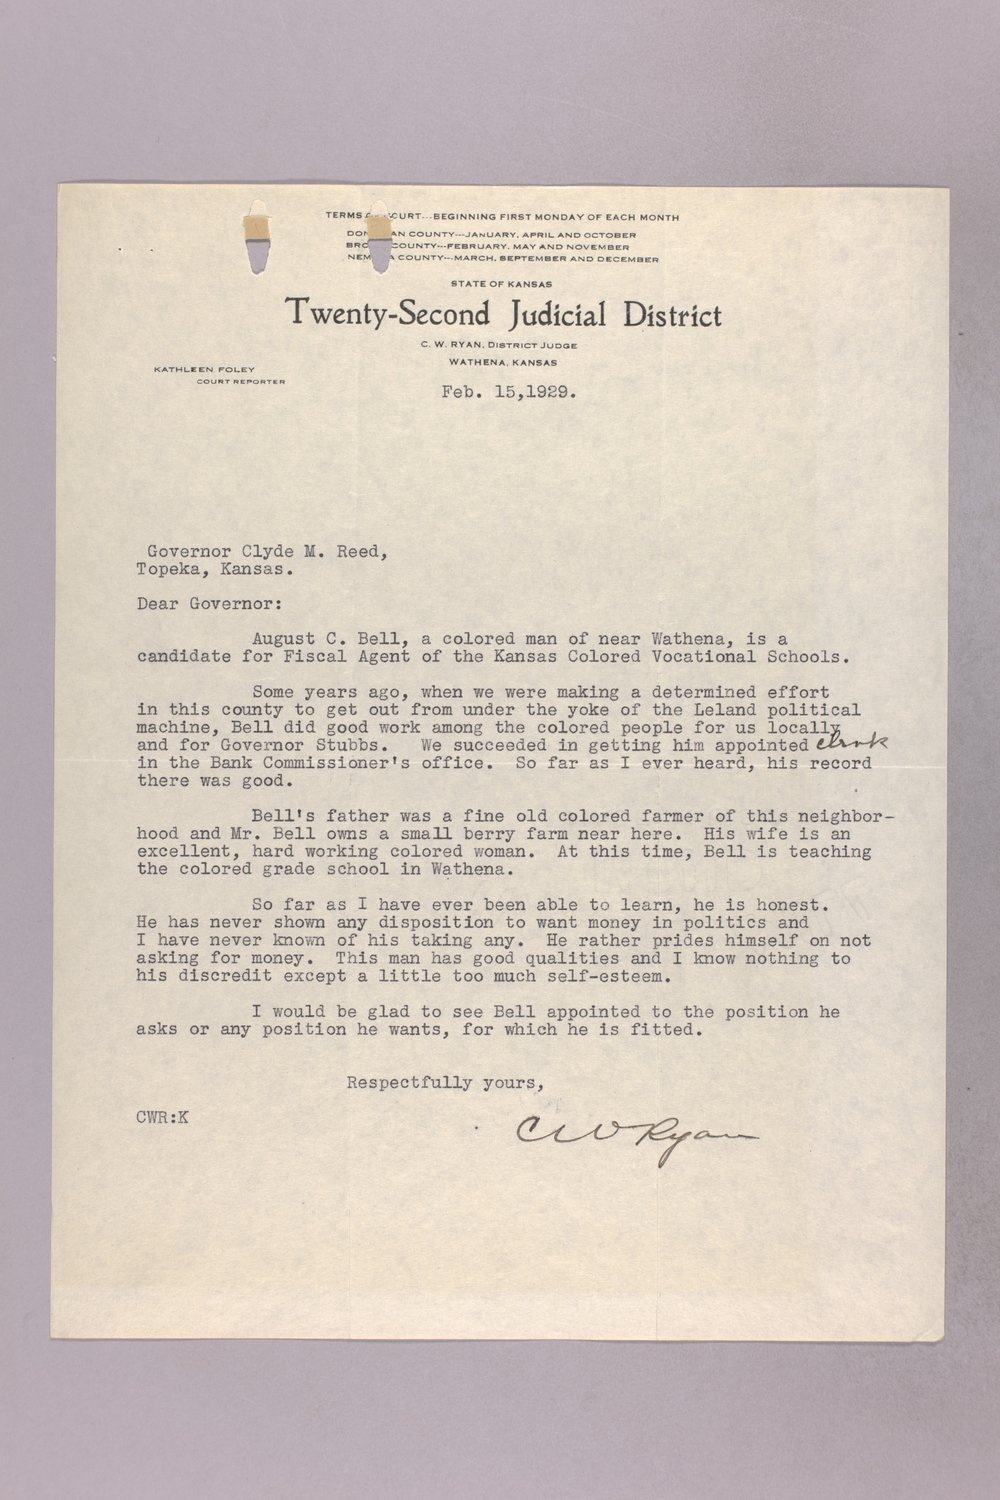 Governor Clyde M. Reed correspondence, vocational school applications - 2